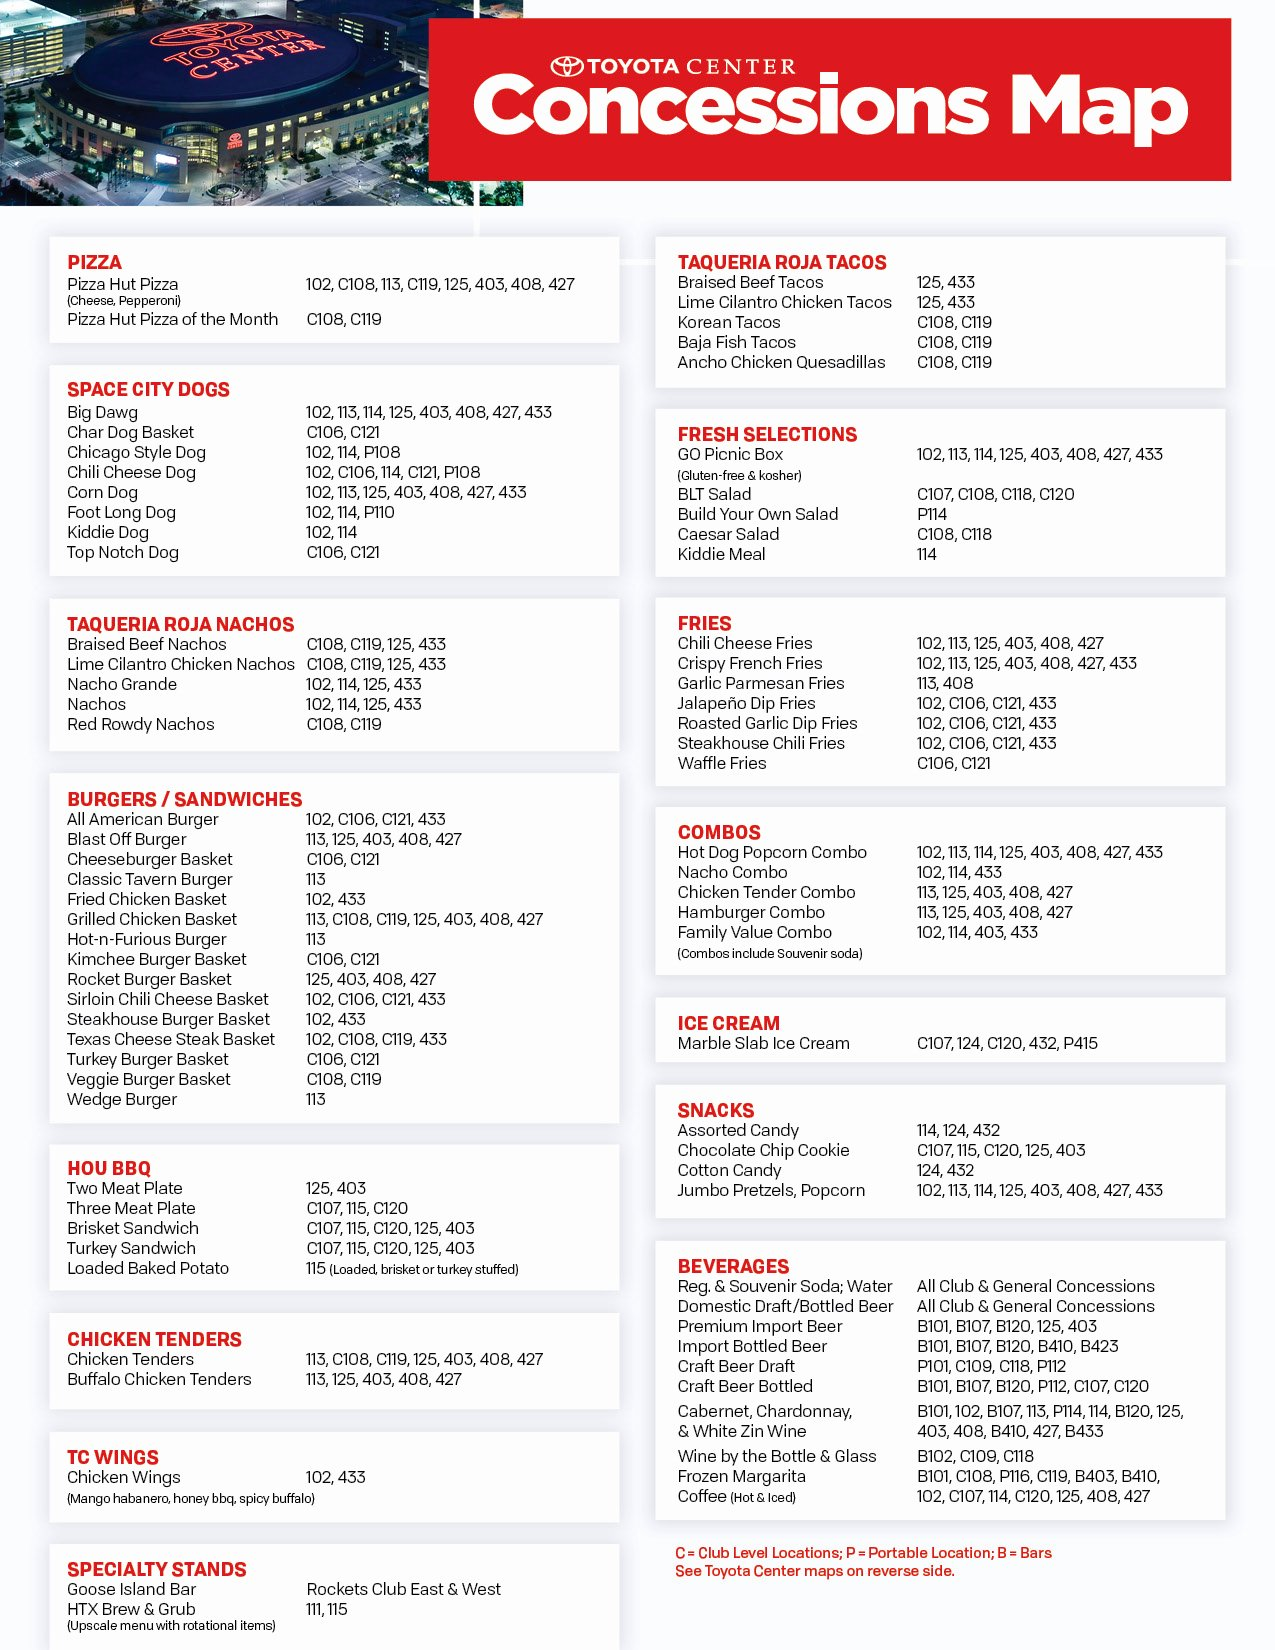 Concession Stand Price List Template Inspirational Index Of Cdn 25 2013 888